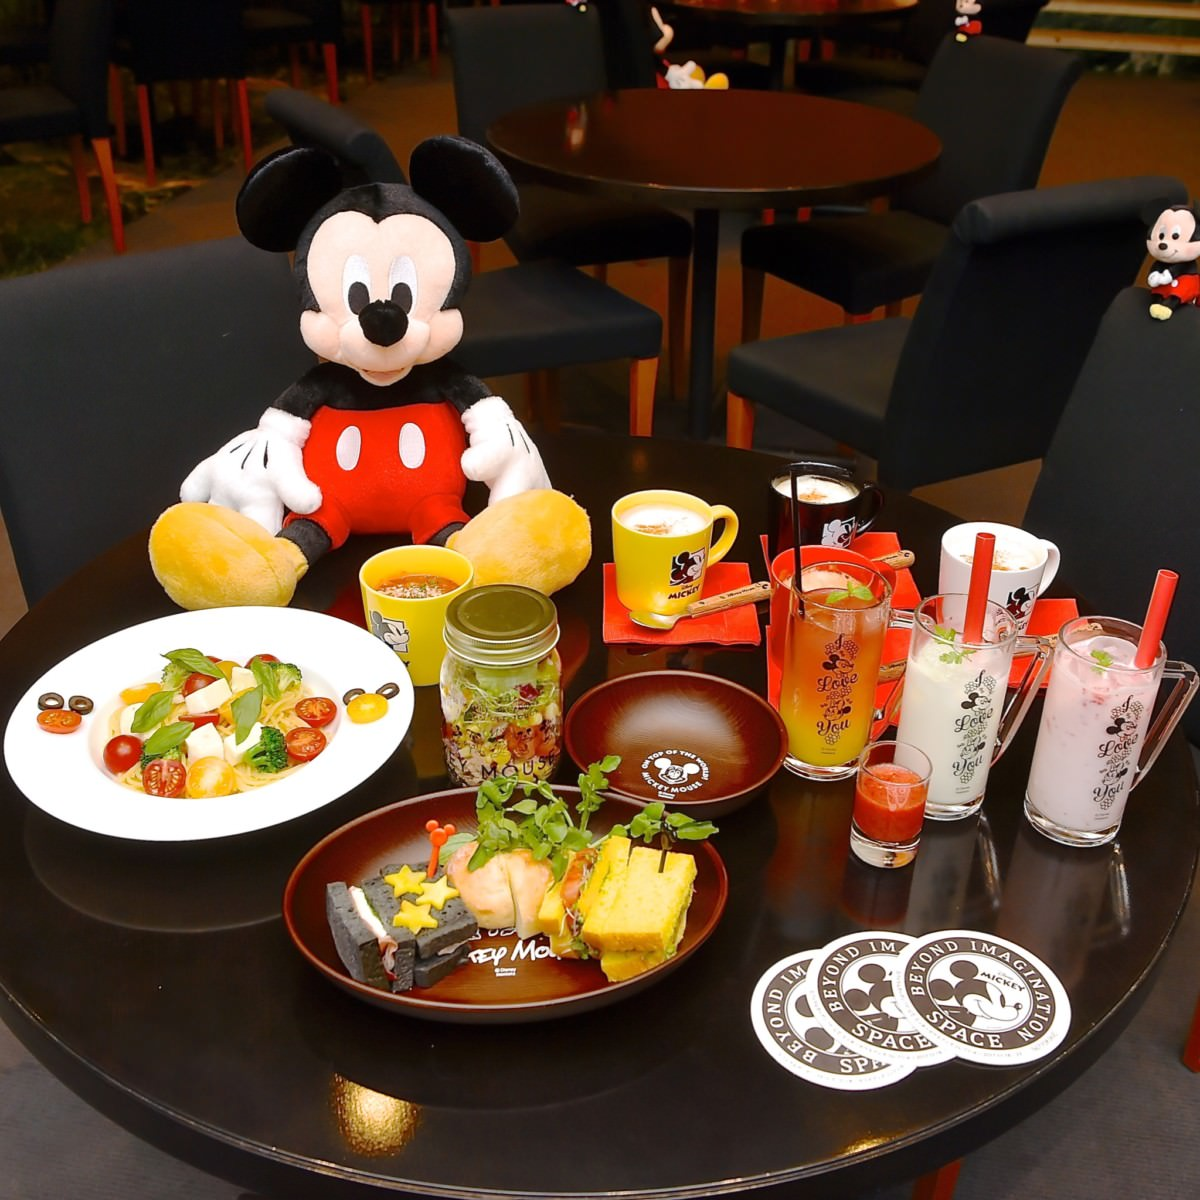 青山・スパイラルガーデン「Disney Mickey Beyond Imagination SPACE」